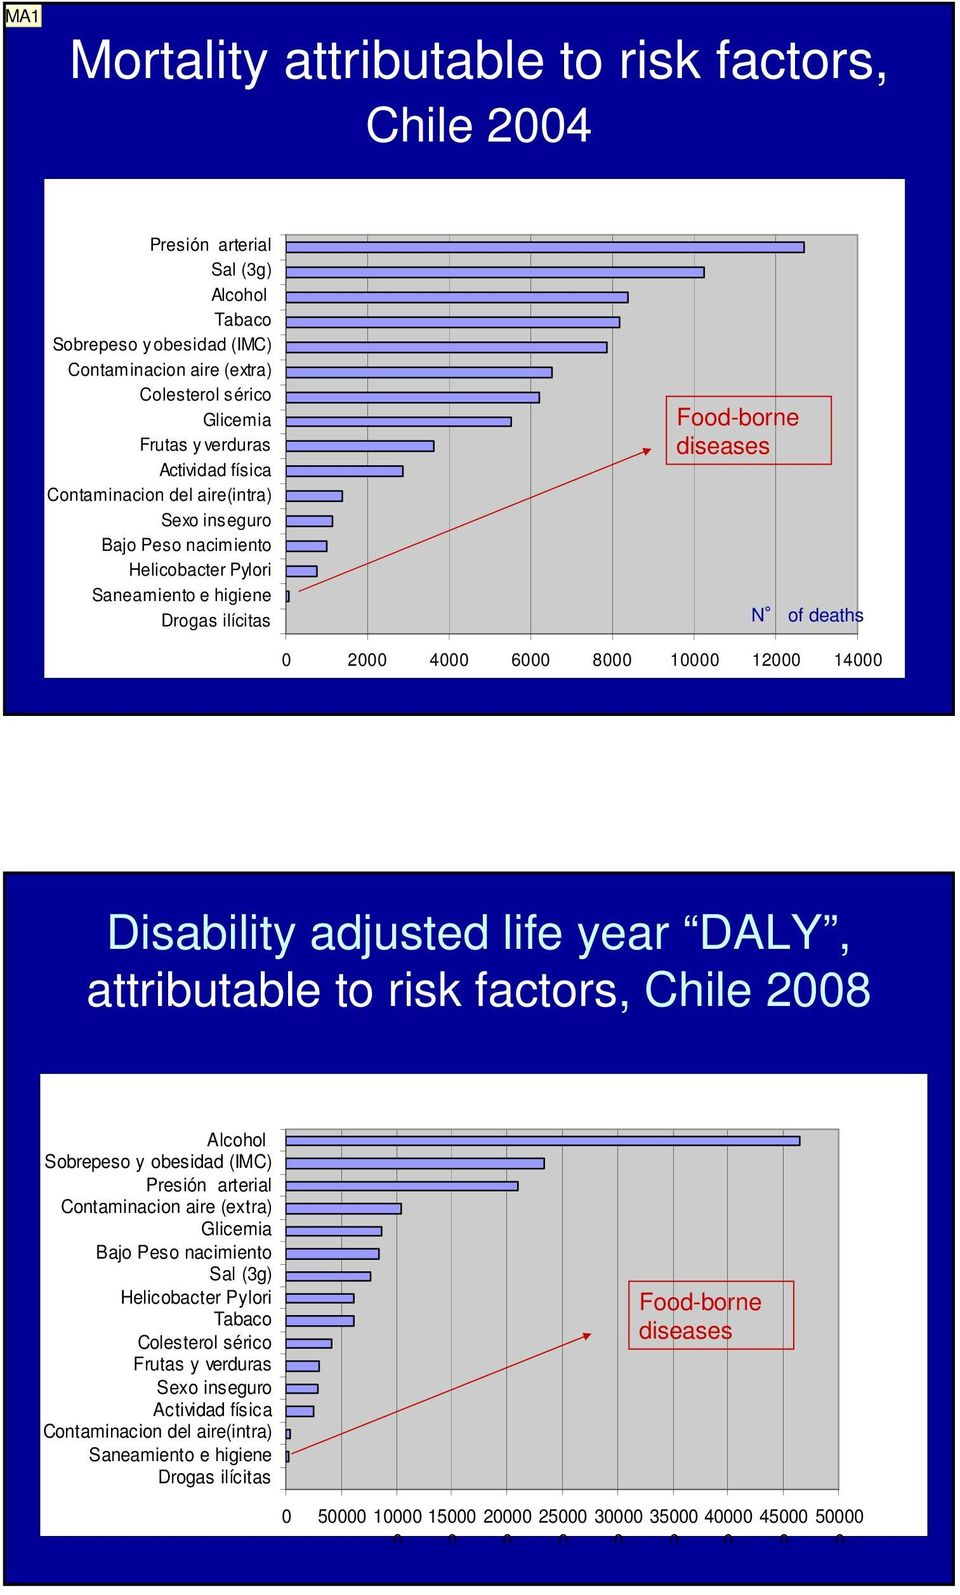 12000 14000 Disability adjusted life year DALY, attributable to risk factors, Chile 2008 Alcohol Sobrepeso y obesidad (IMC) Presión arterial Contaminacion aire (extra) Glicemia Bajo Peso nacimiento